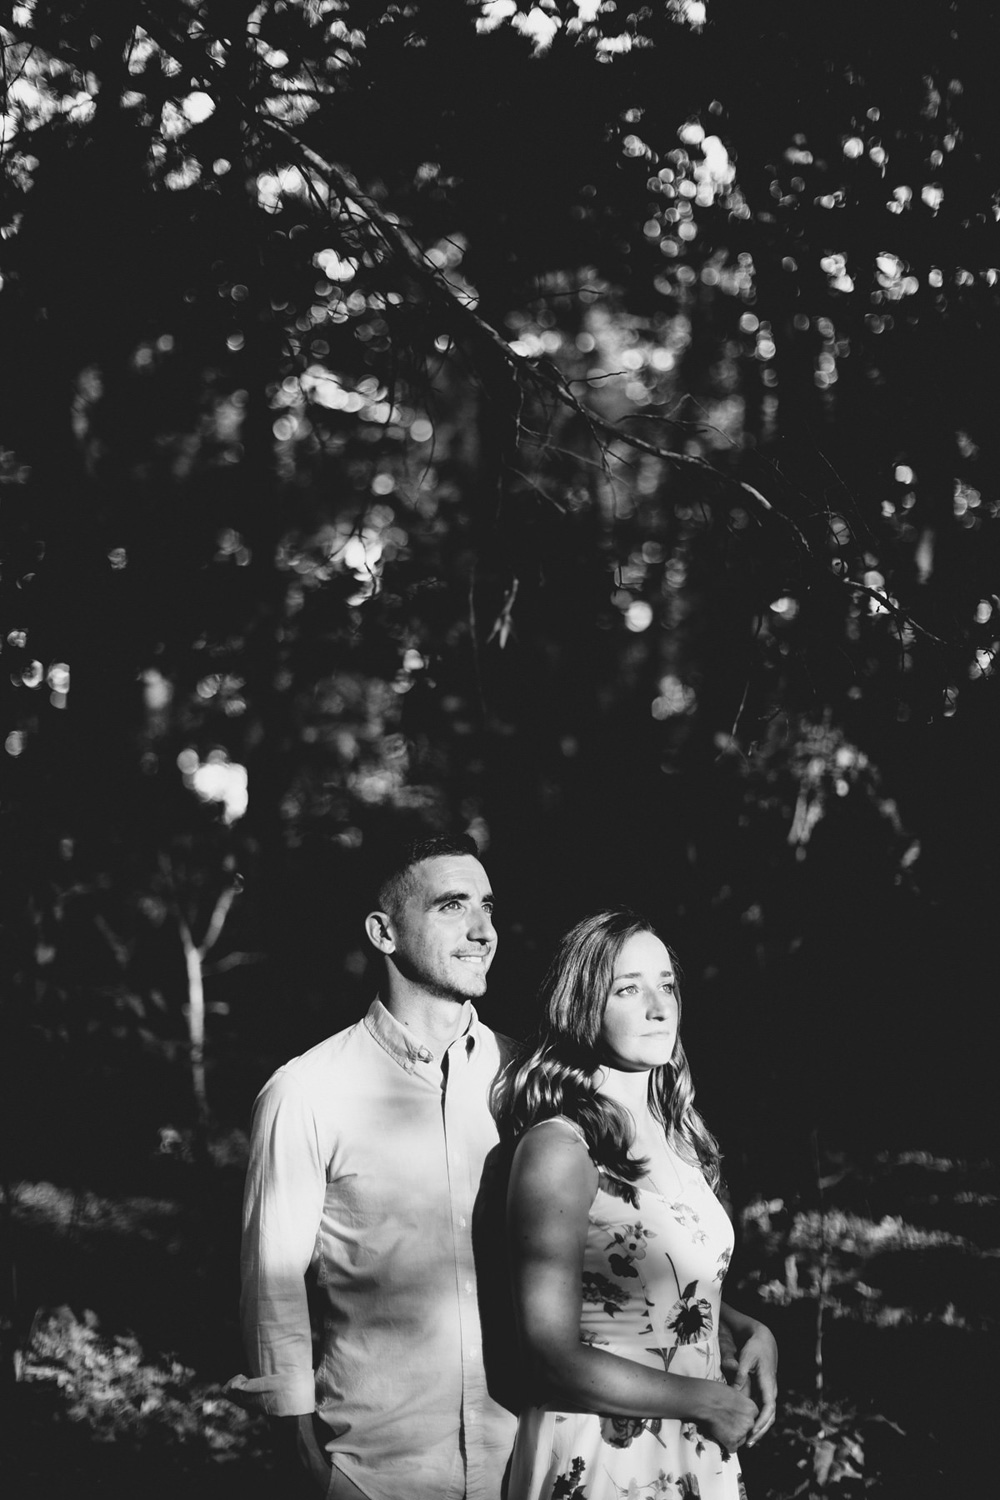 008-creative-new-england-engagement-session.jpg